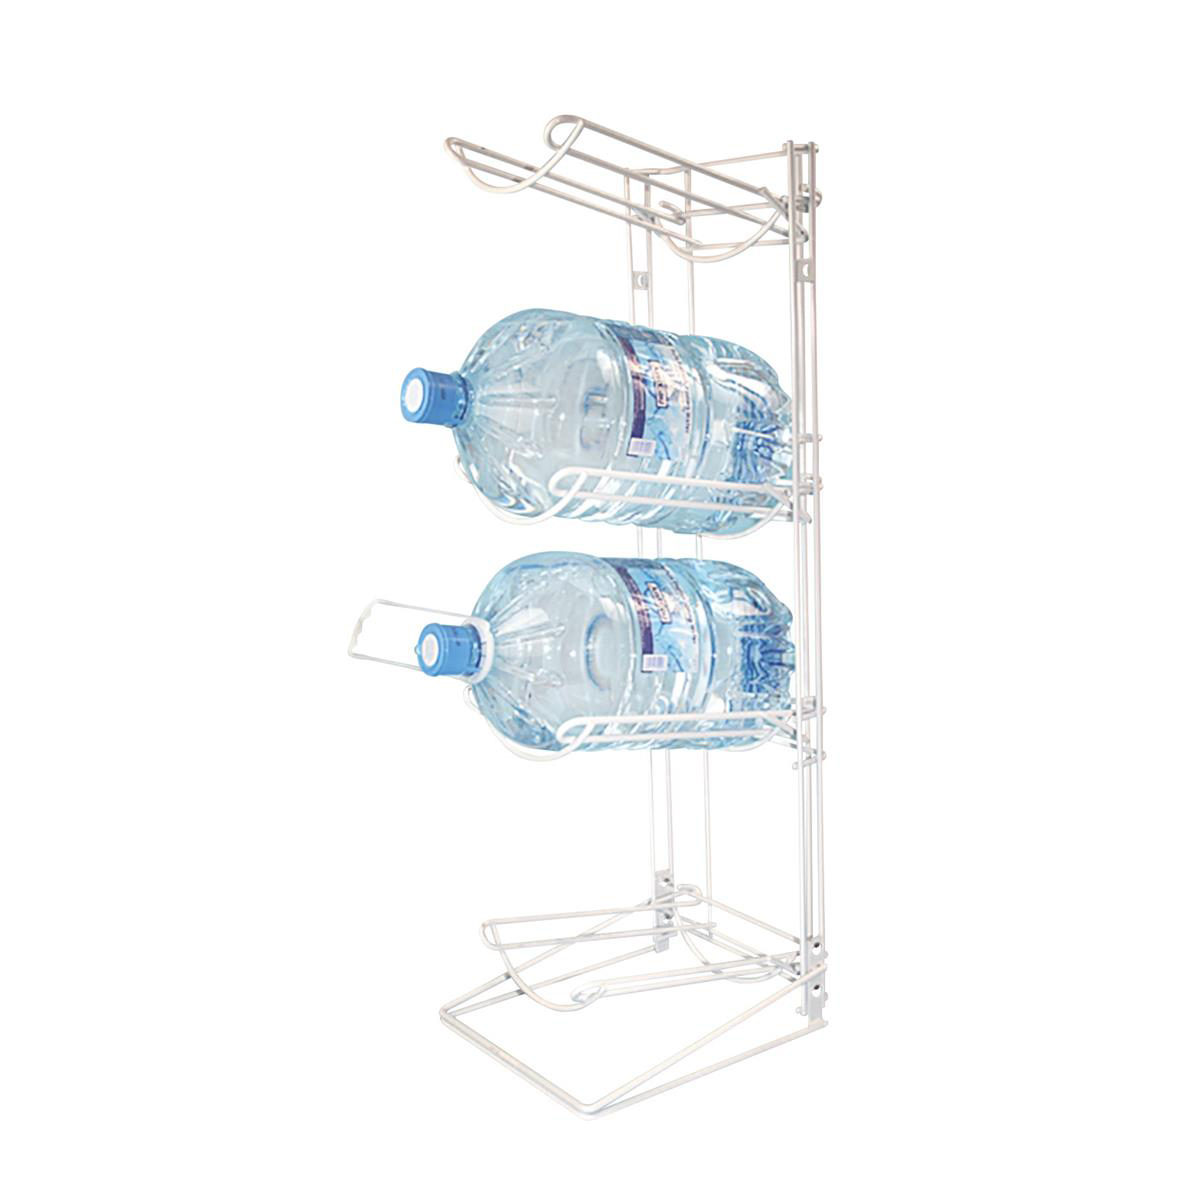 Water Cooler Storage Rack for 4 Bottles  sc 1 st  Empire Office & Water Cooler Storage Rack for 4 Bottles - Office and Stationery ...